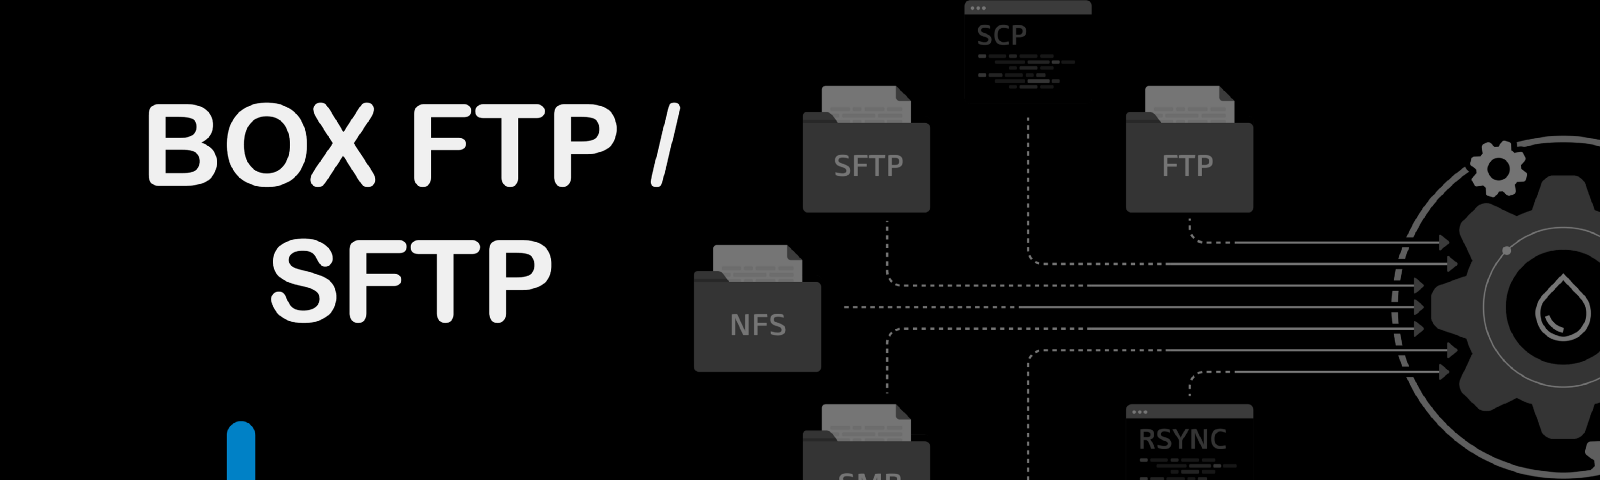 ftp / sftp for Box